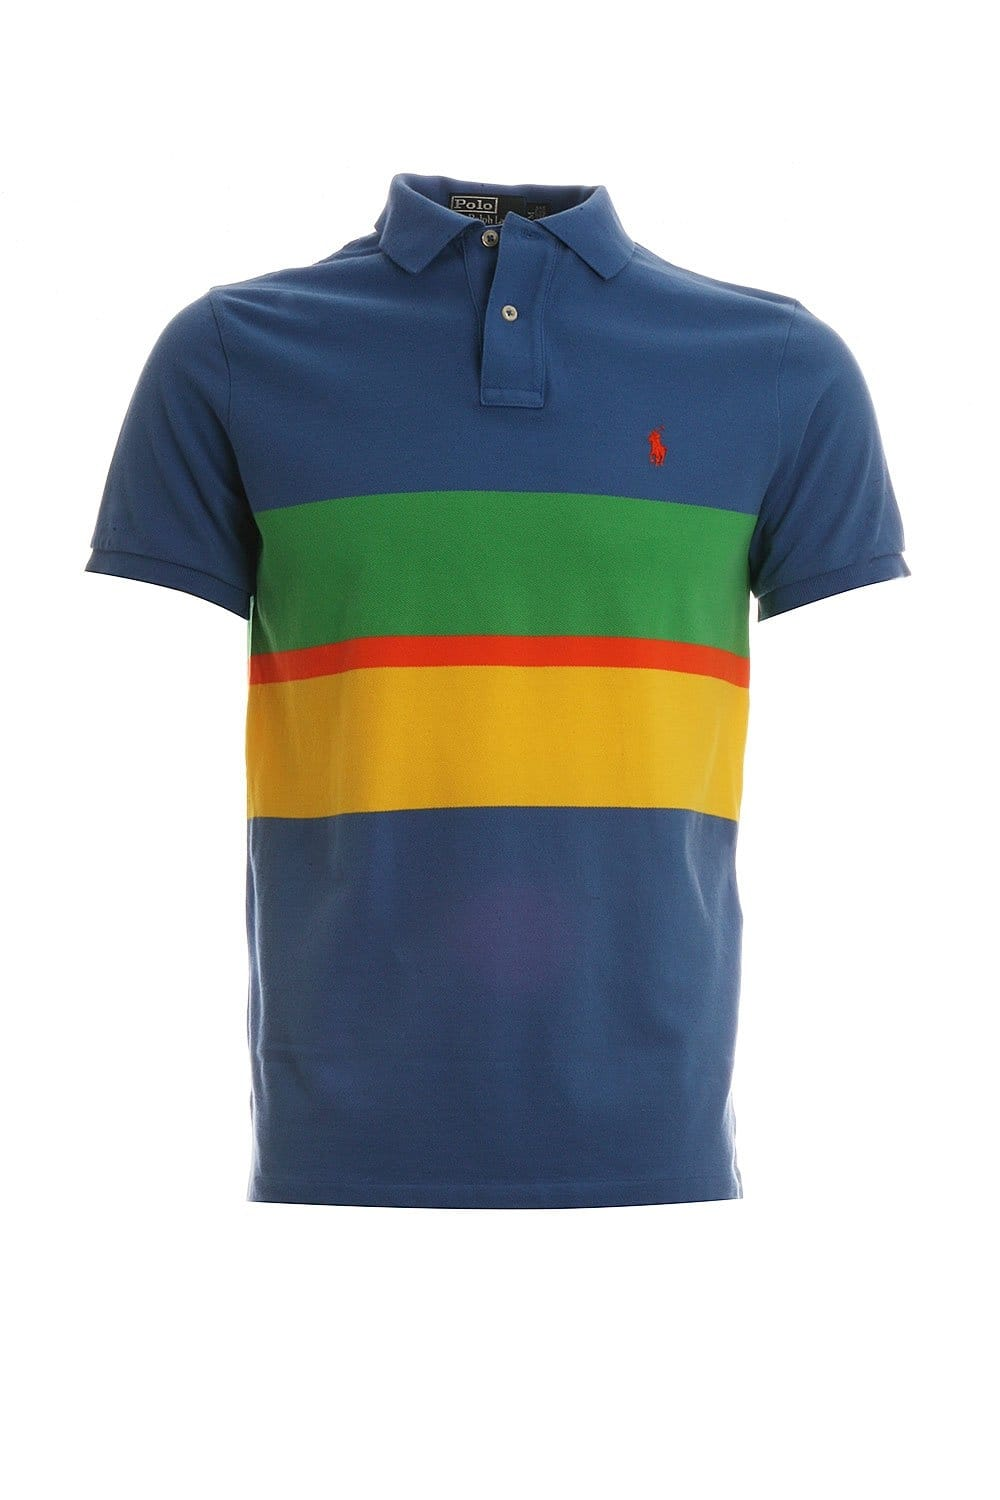 Polo ralph lauren striped design polo t shirt in blue for Polo t shirt design images